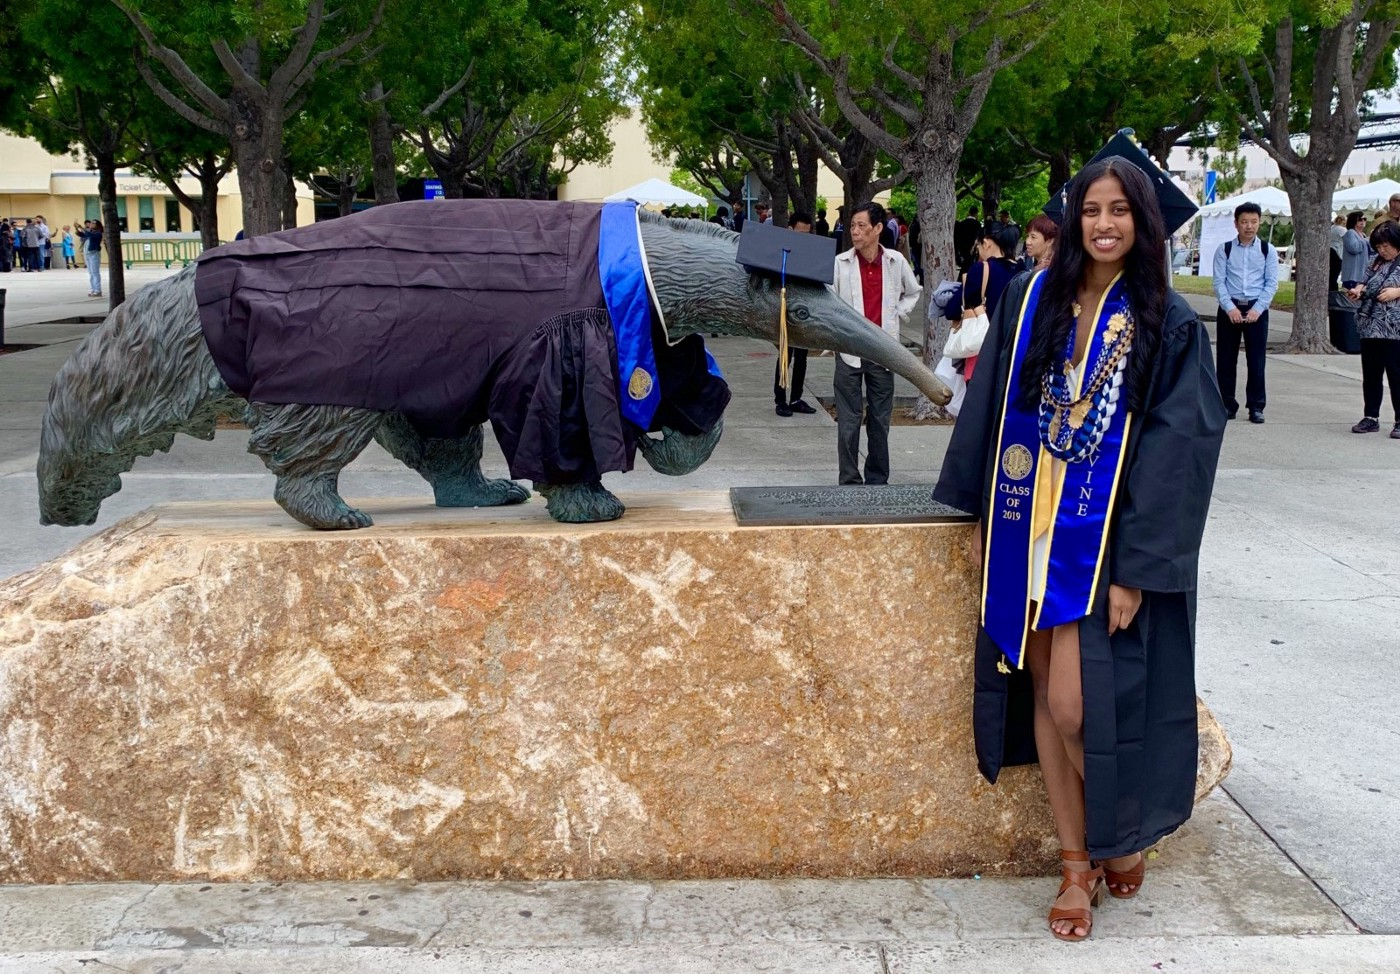 A picture of me, Ami, in my graduation attire in front of an Anteater statue.